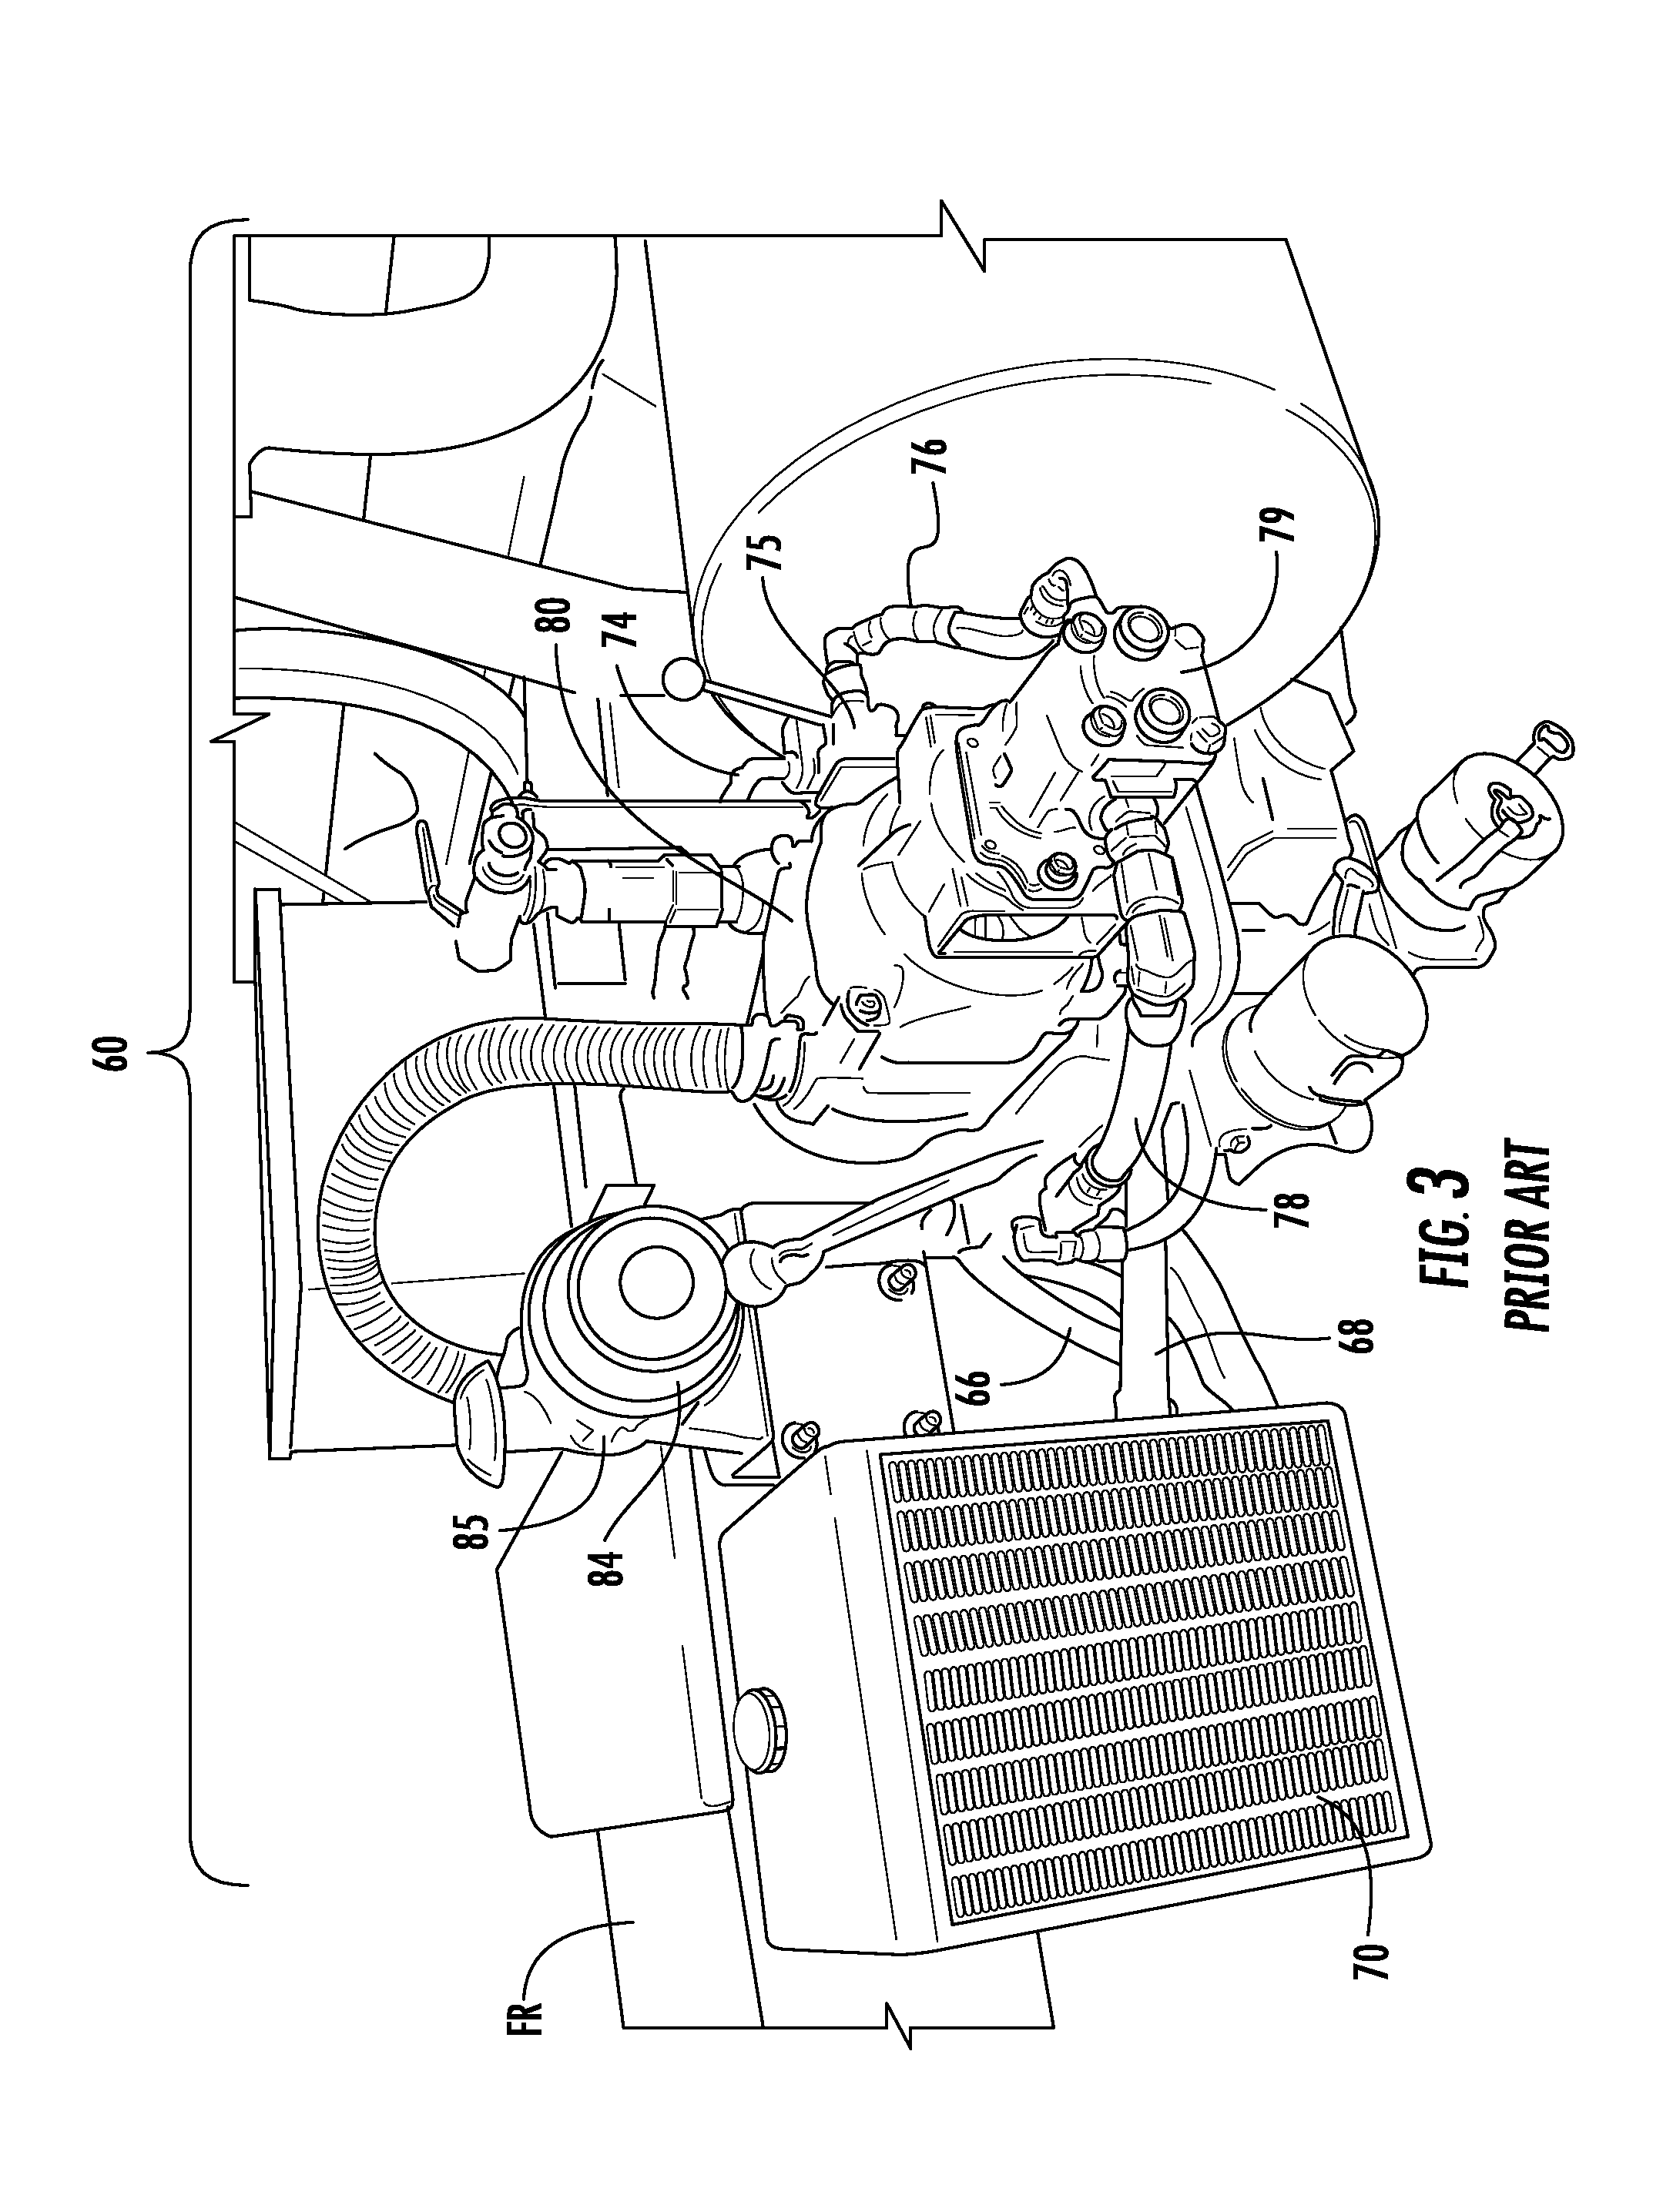 Patent Us20140150871 System And Method For Off Loading Liquids 3 1 Lgm Engine Diagram Drawing